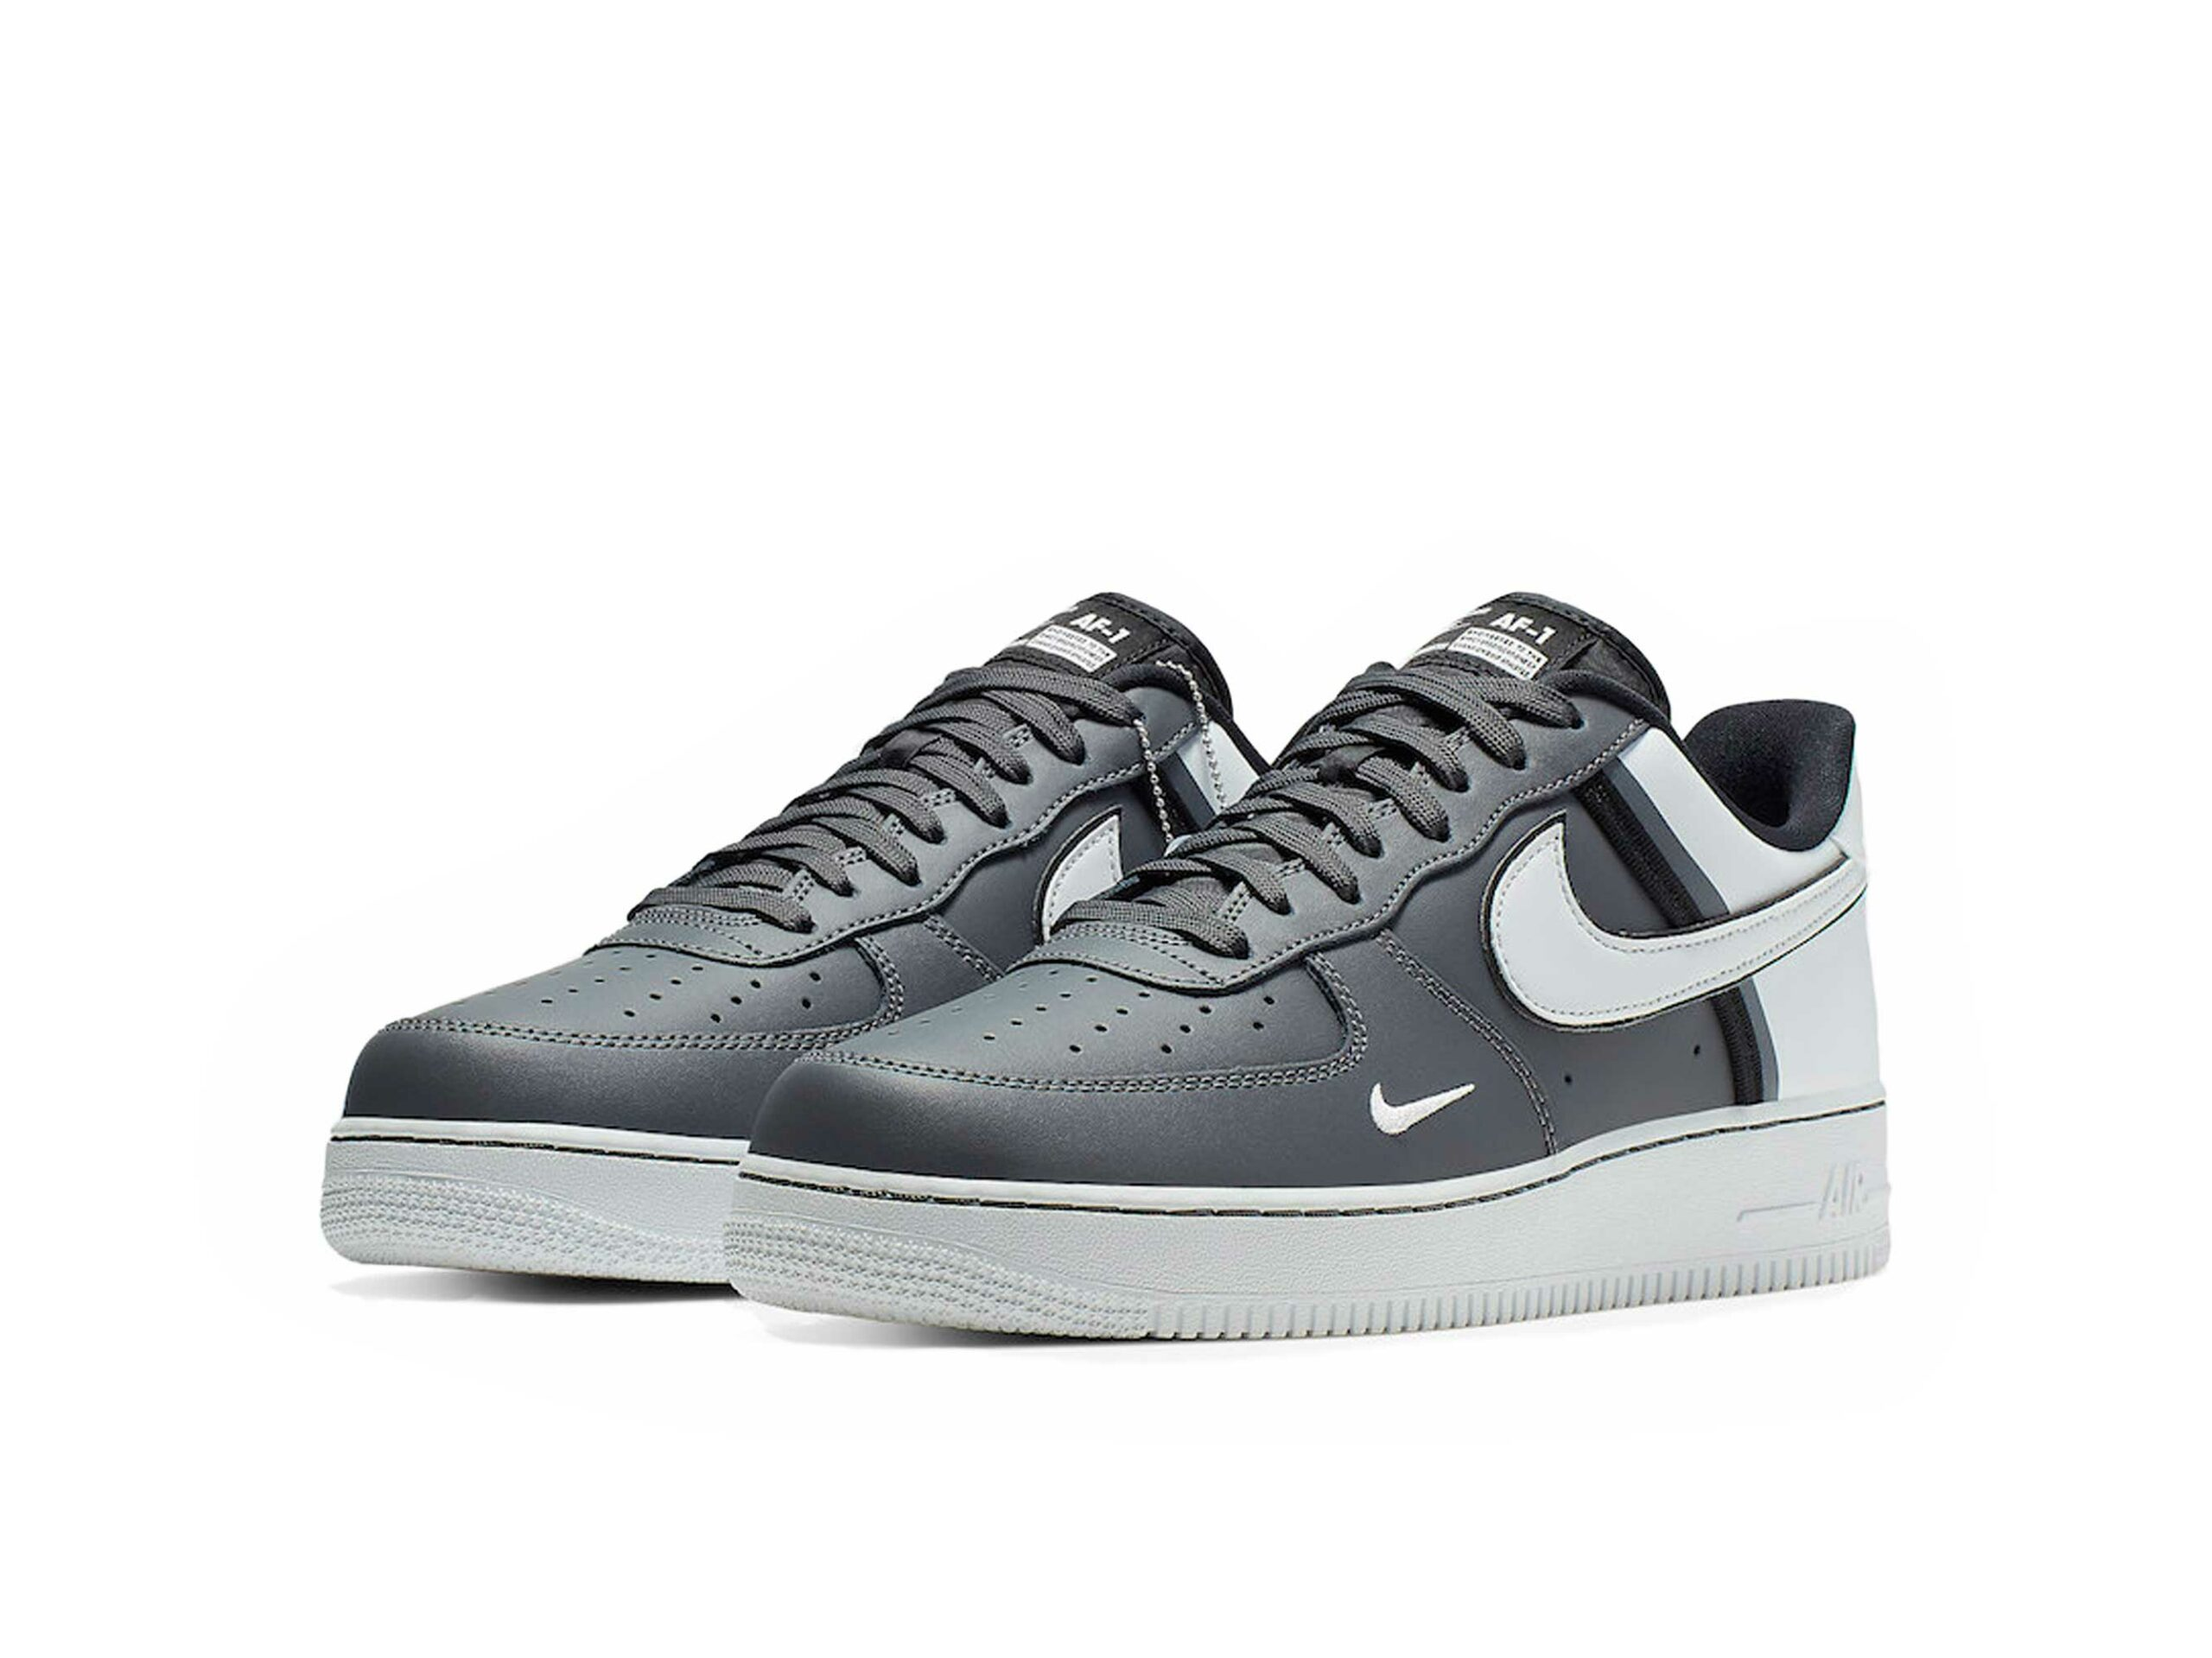 nike air force 1 lv 8 grey white CI0061_002 купить